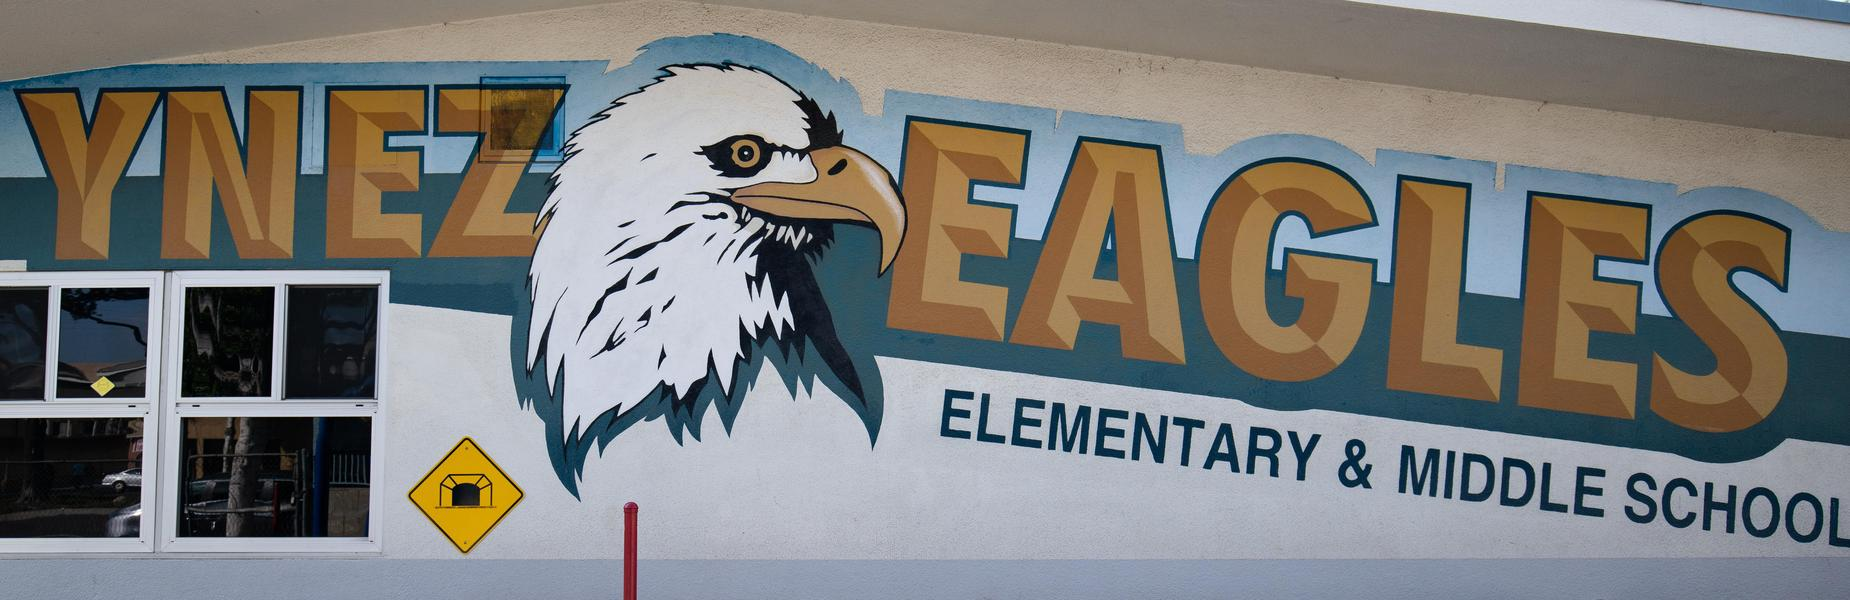 Ynez Eagle Painting Mural